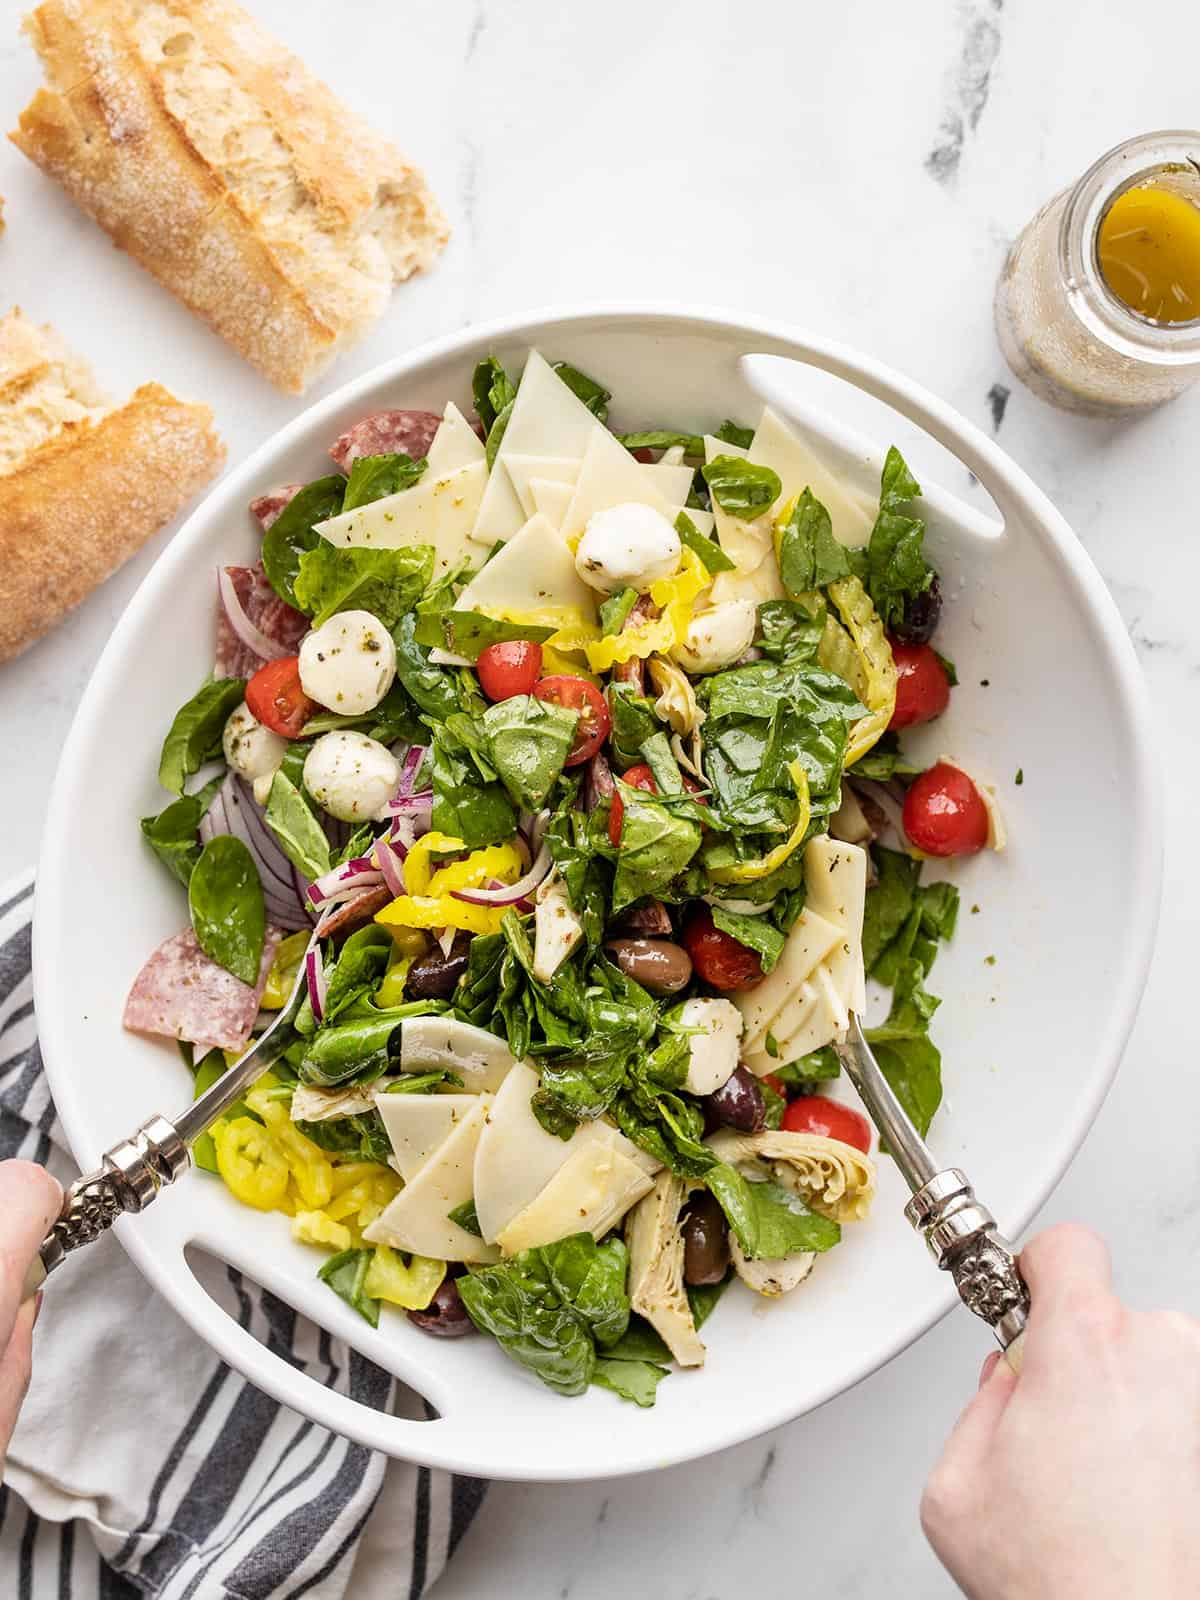 Antipasto salad being tossed with metal salad tongs